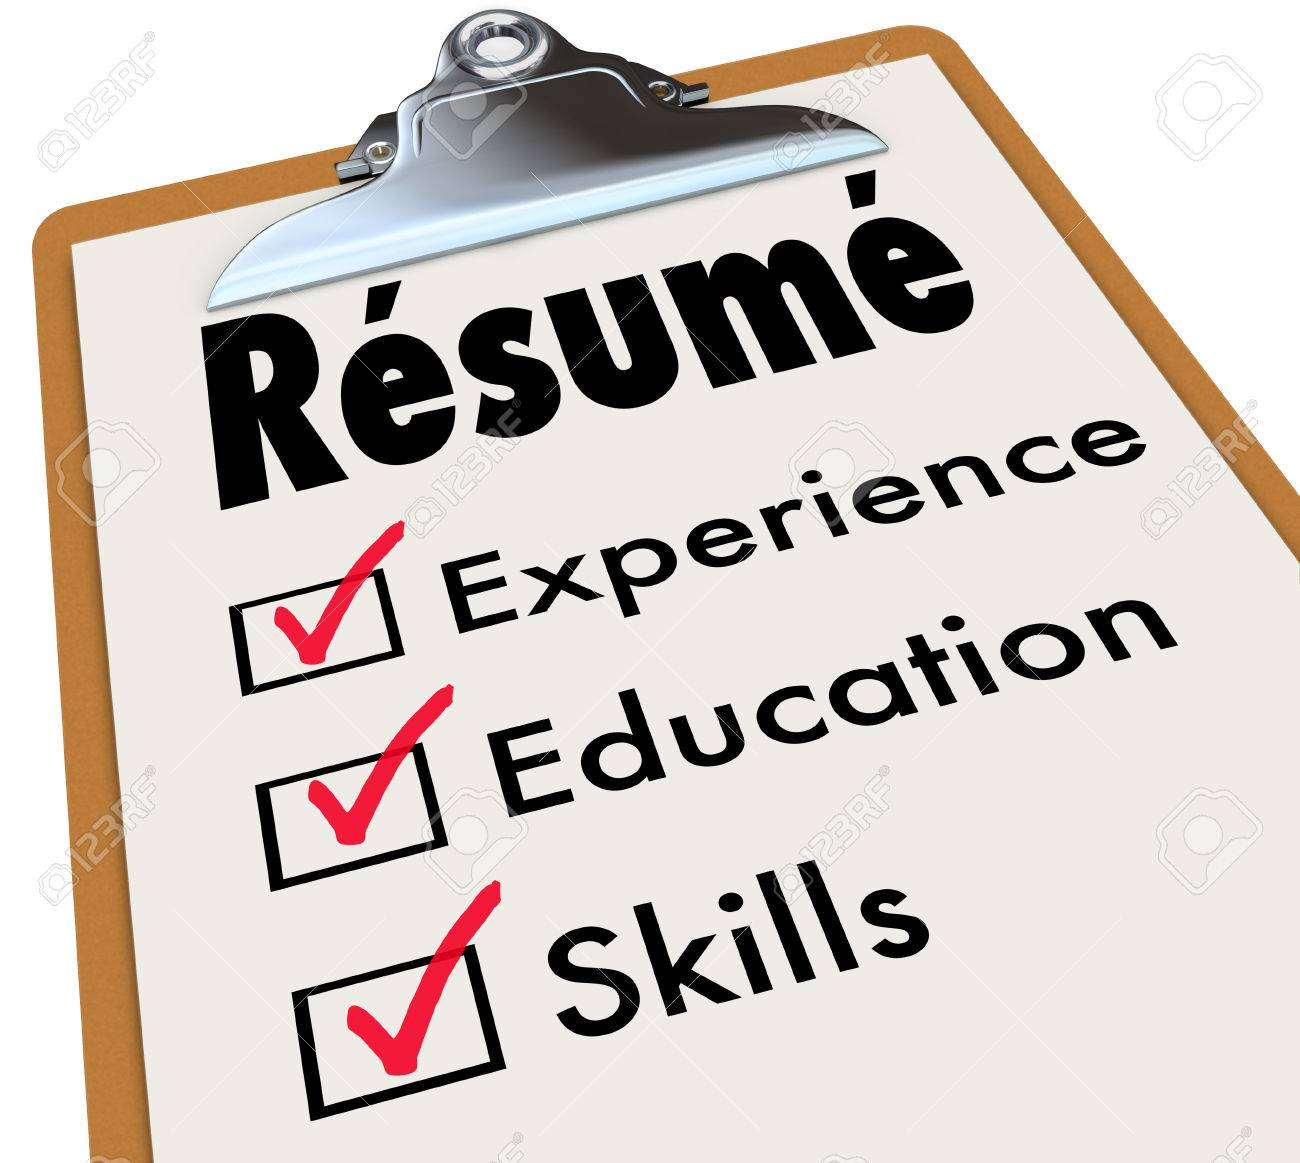 resume word on a clipboard checklist of qualifications or criteria resume word on a clipboard checklist of qualifications or criteria for a job including education